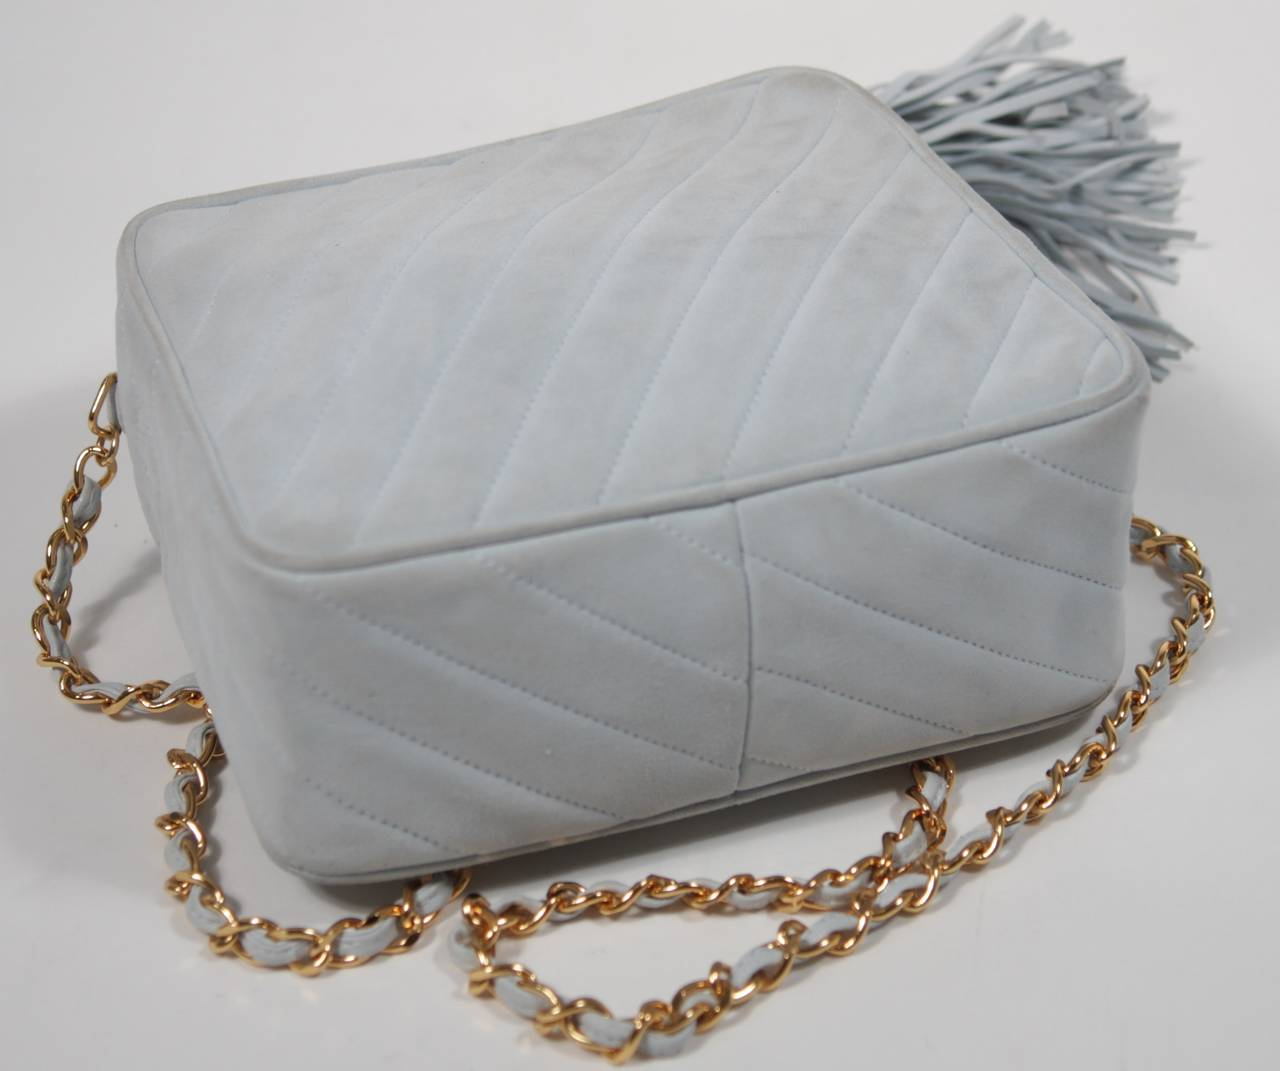 Chanel Light Blue Quilted Suede Purse with Gold Hardware and Tassel 7